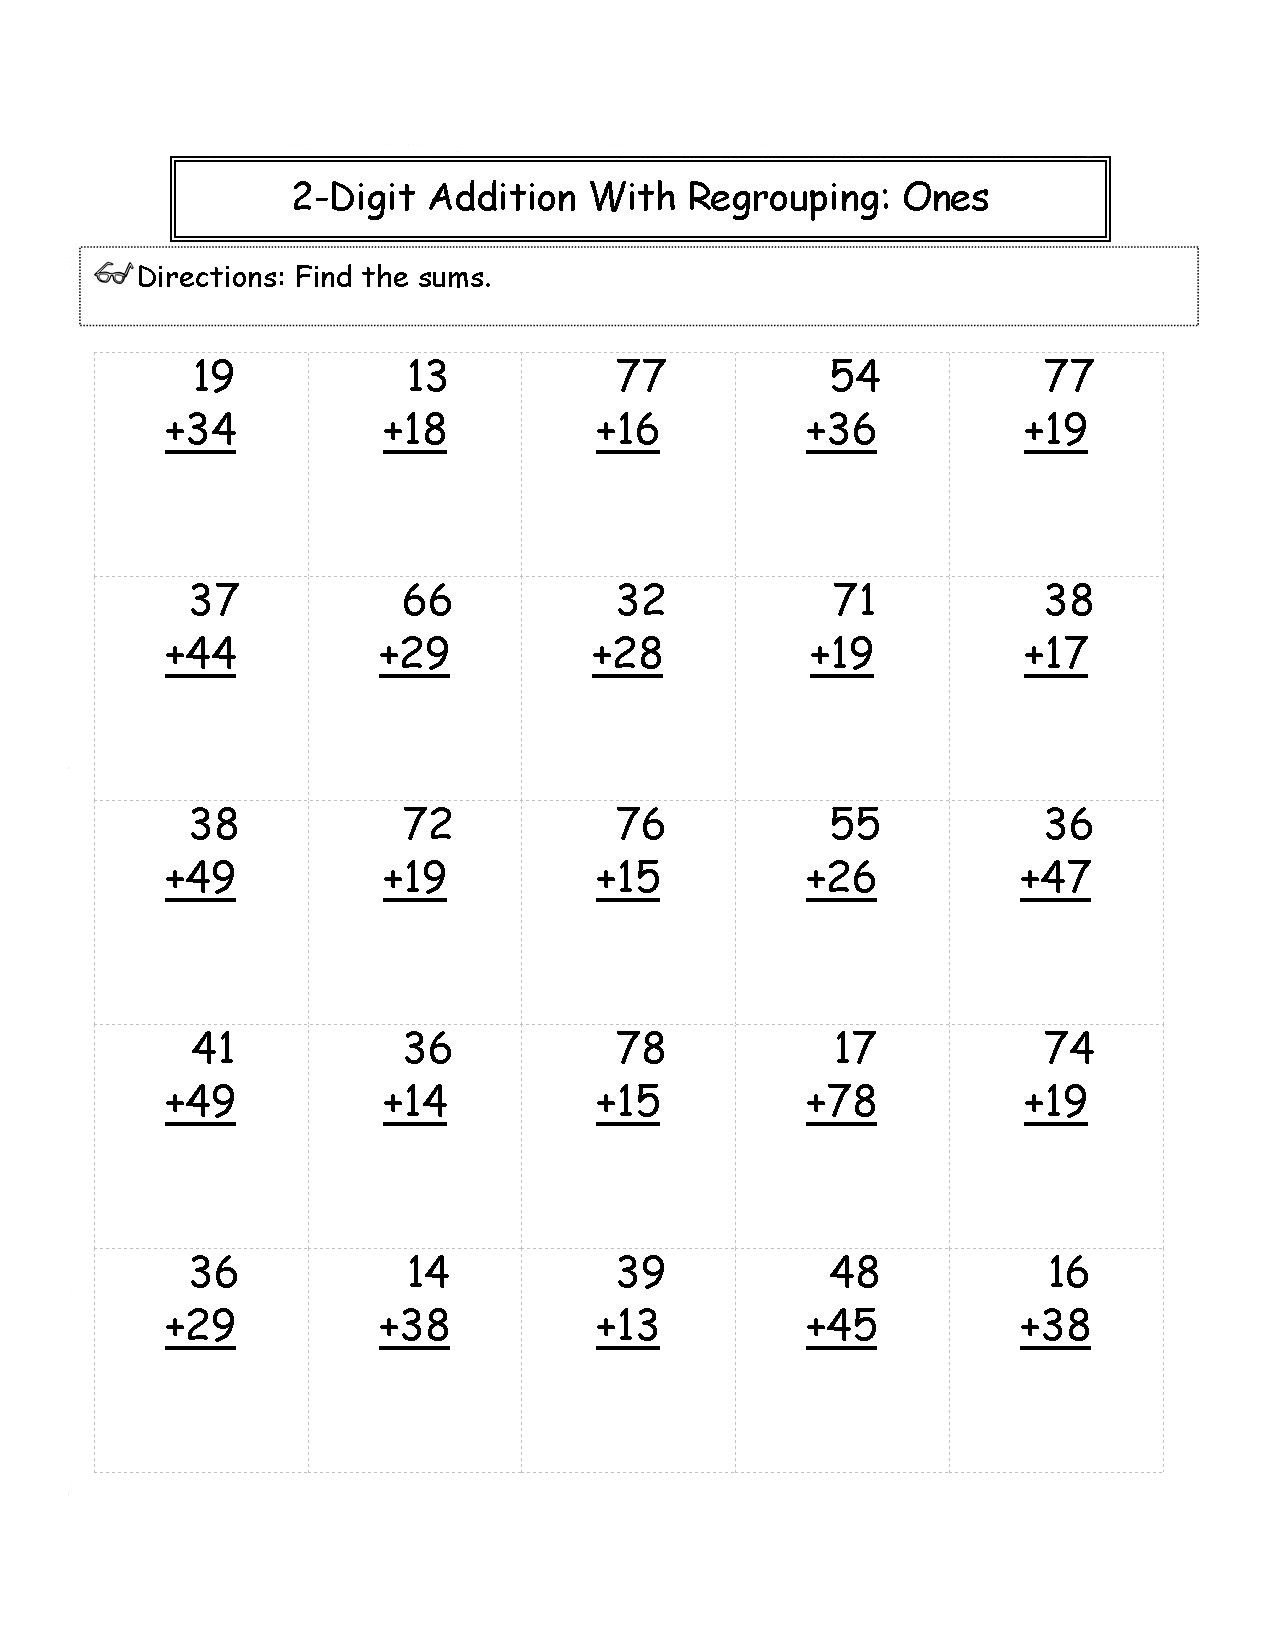 2nd grade subtraction problems second maths with regrouping